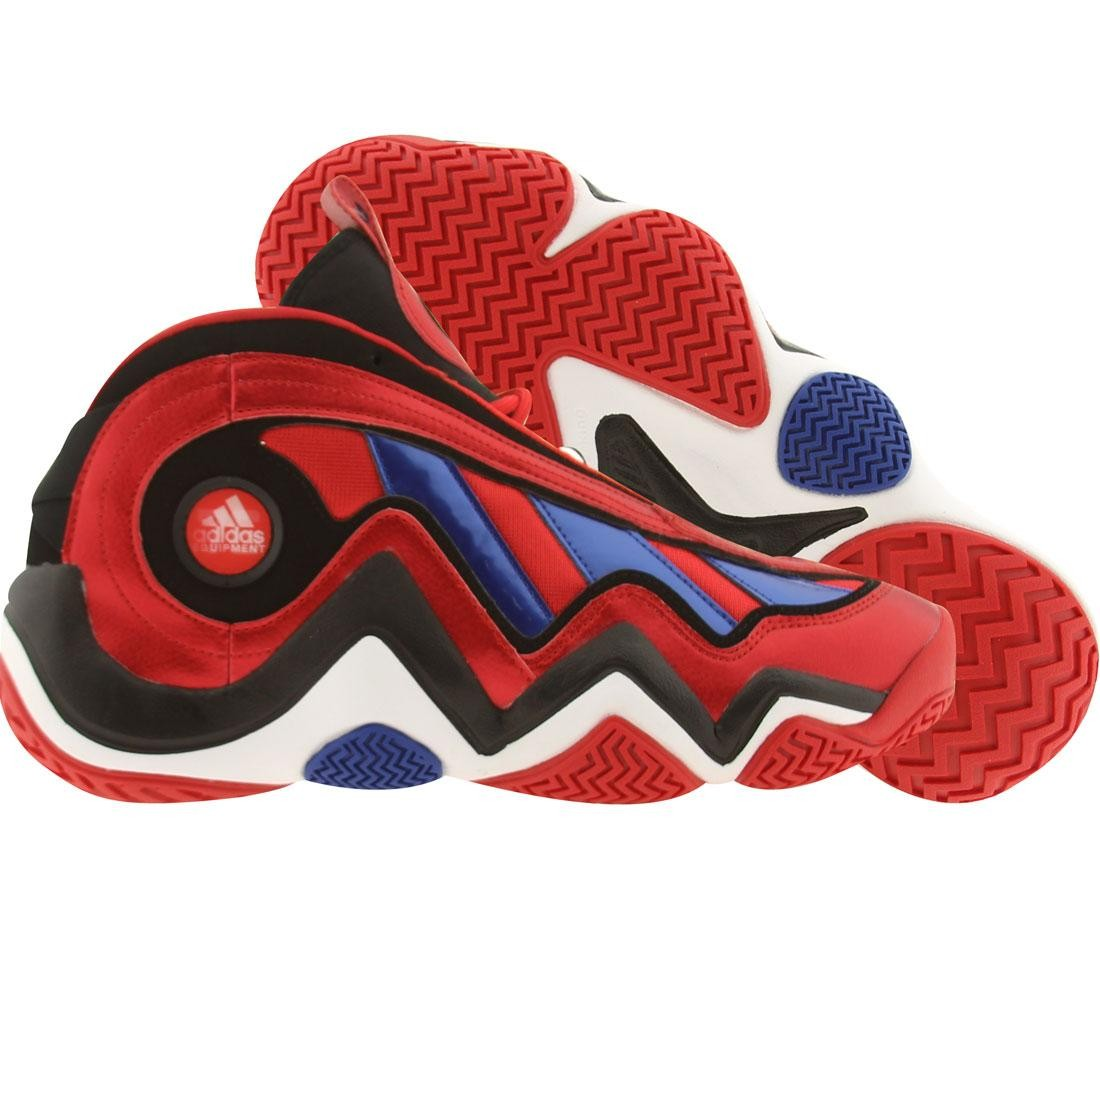 Adidas Men Crazy 97 EQT Elevation - Kobe Bryant 76ers (light scarlet / blusld / runninwhite)